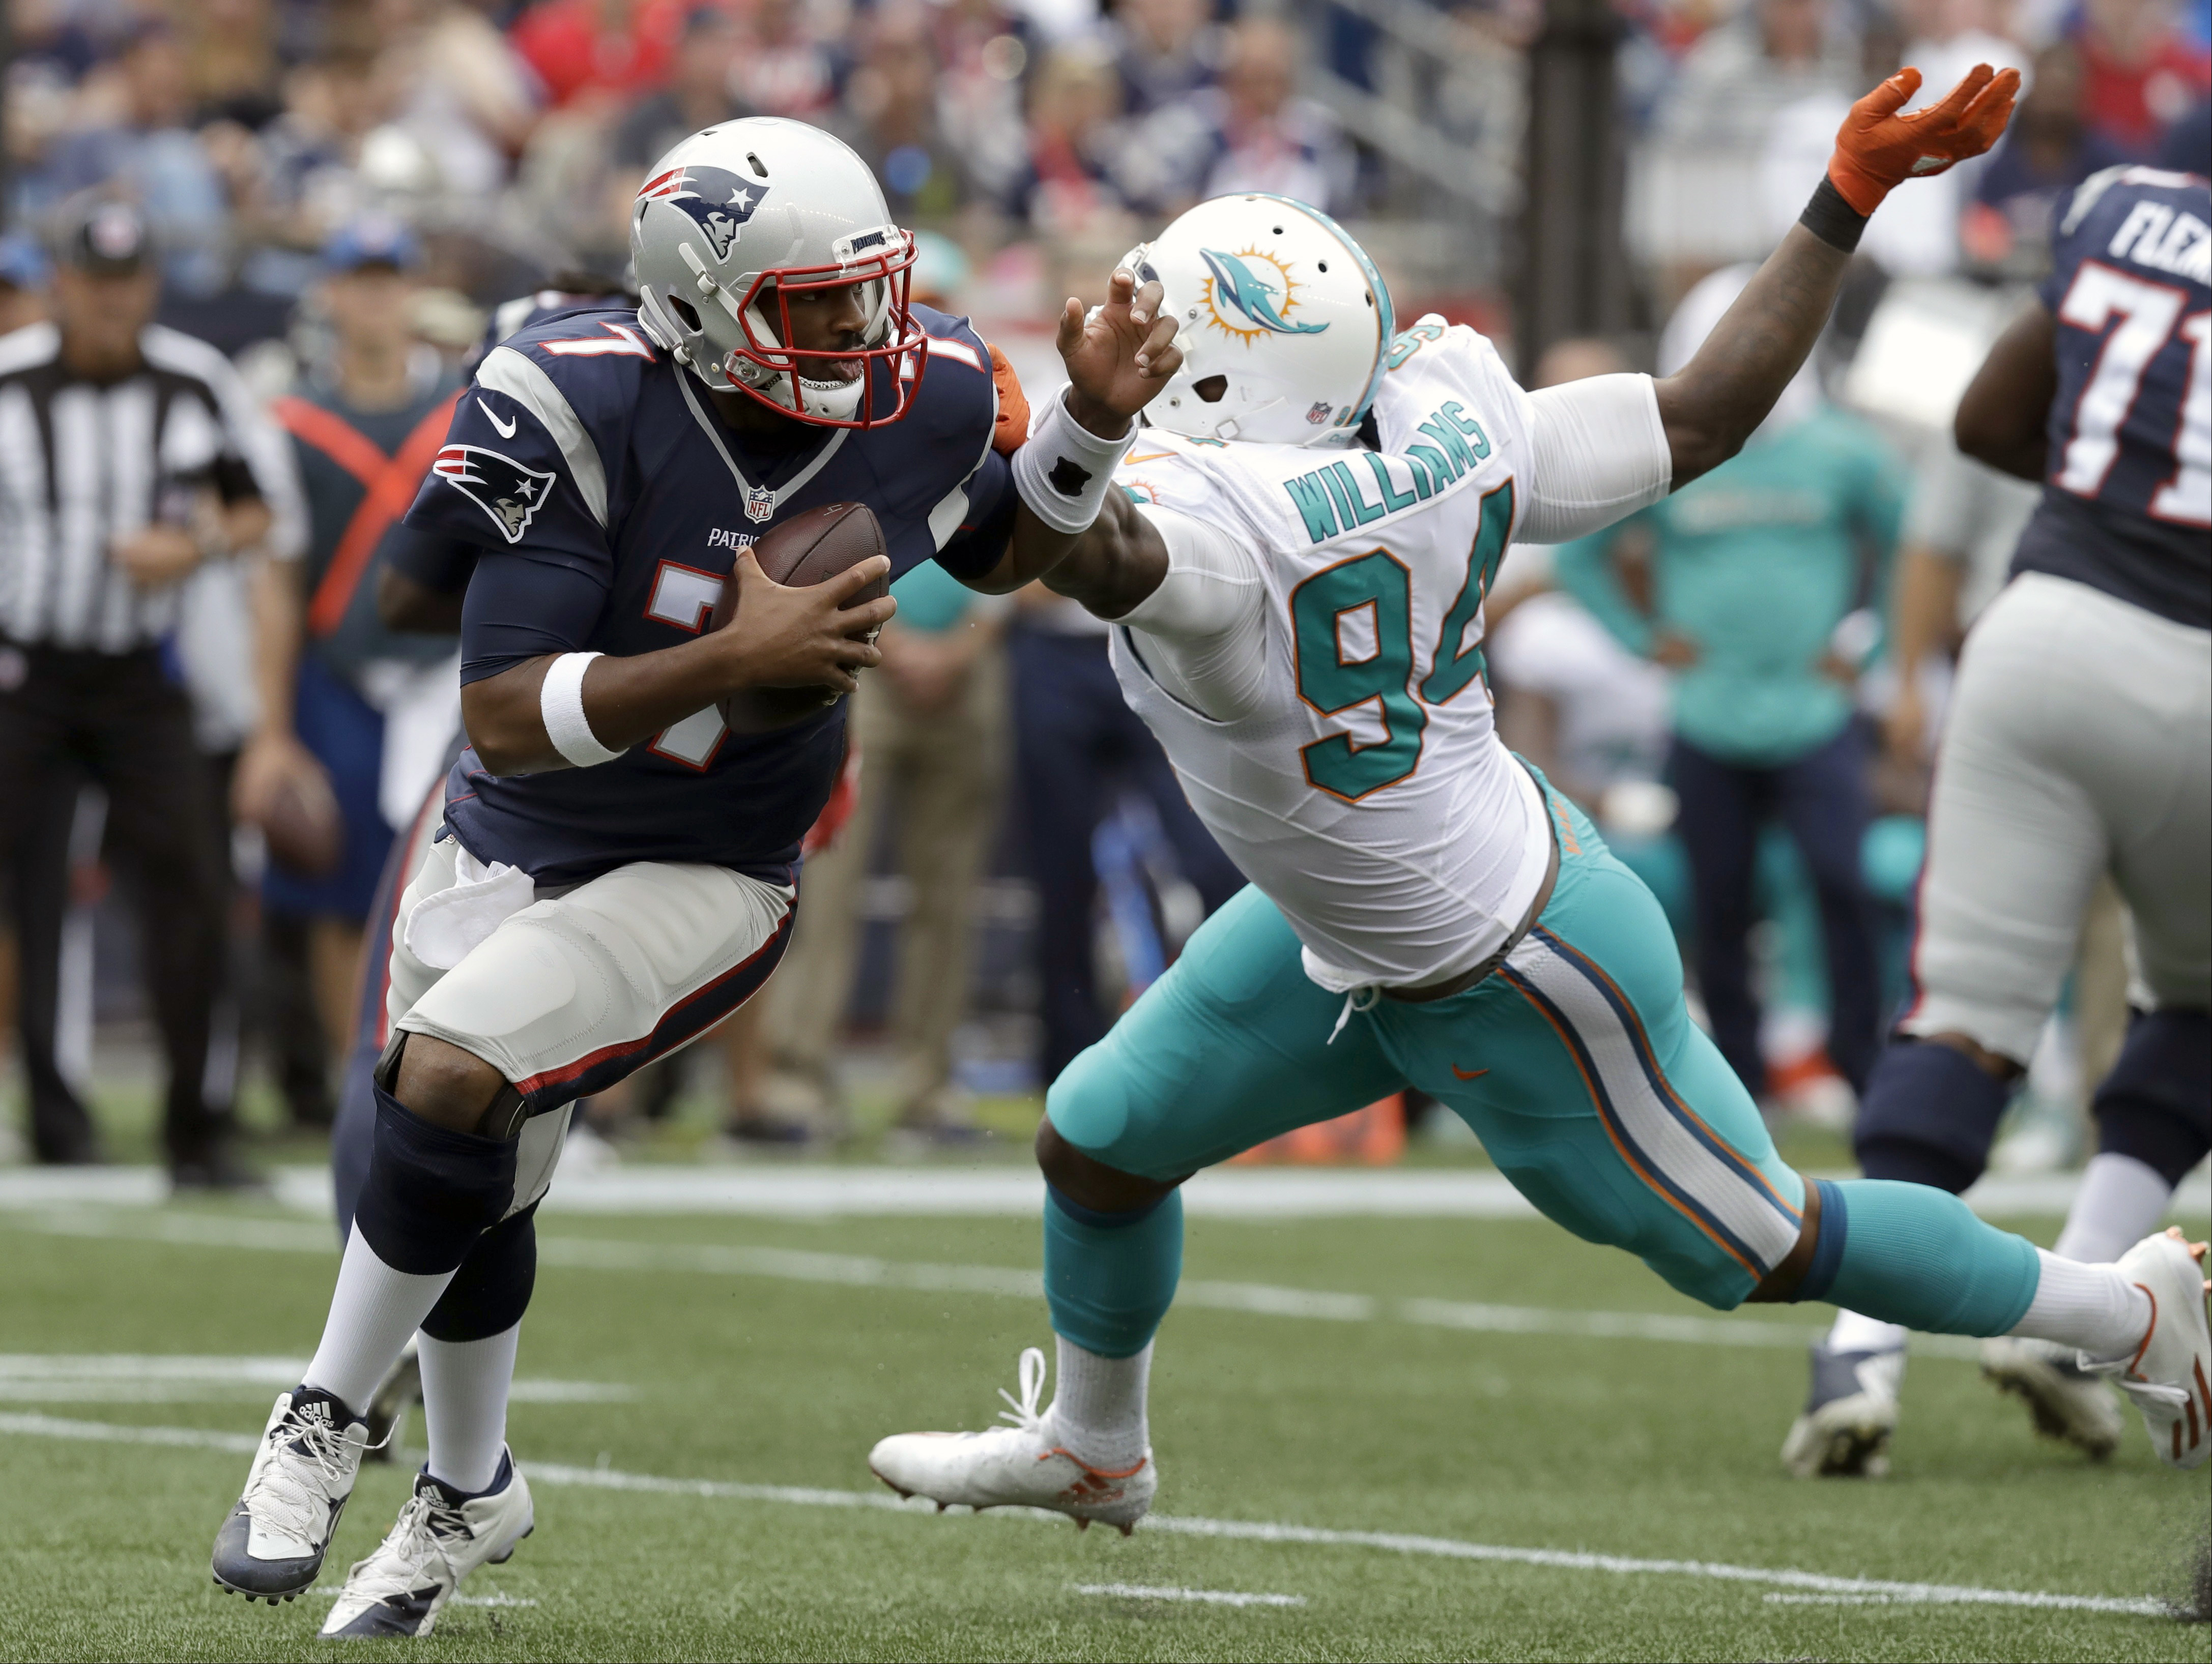 New England Patriots quarterback Jacoby Brissett (7) scrambles away from Miami Dolphins defensive end Mario Williams (94) during the second half of an NFL football game Sunday, Sept. 18, 2016, in Foxborough, Mass. (AP Photo/Charles Krupa)